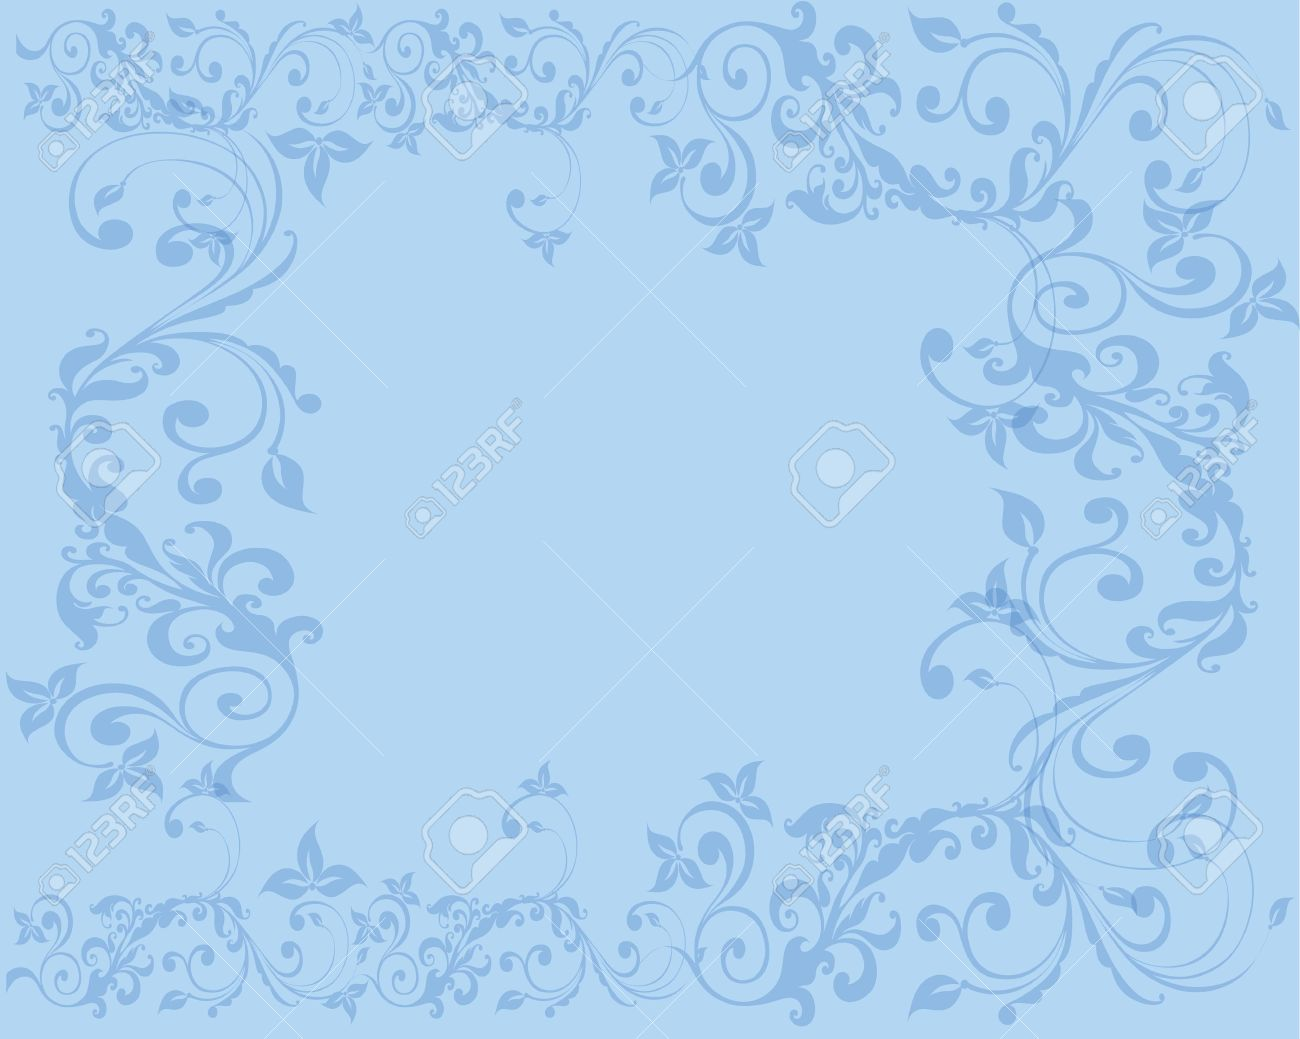 Simple And Clean Abstract Light Blue Floral Background Royalty